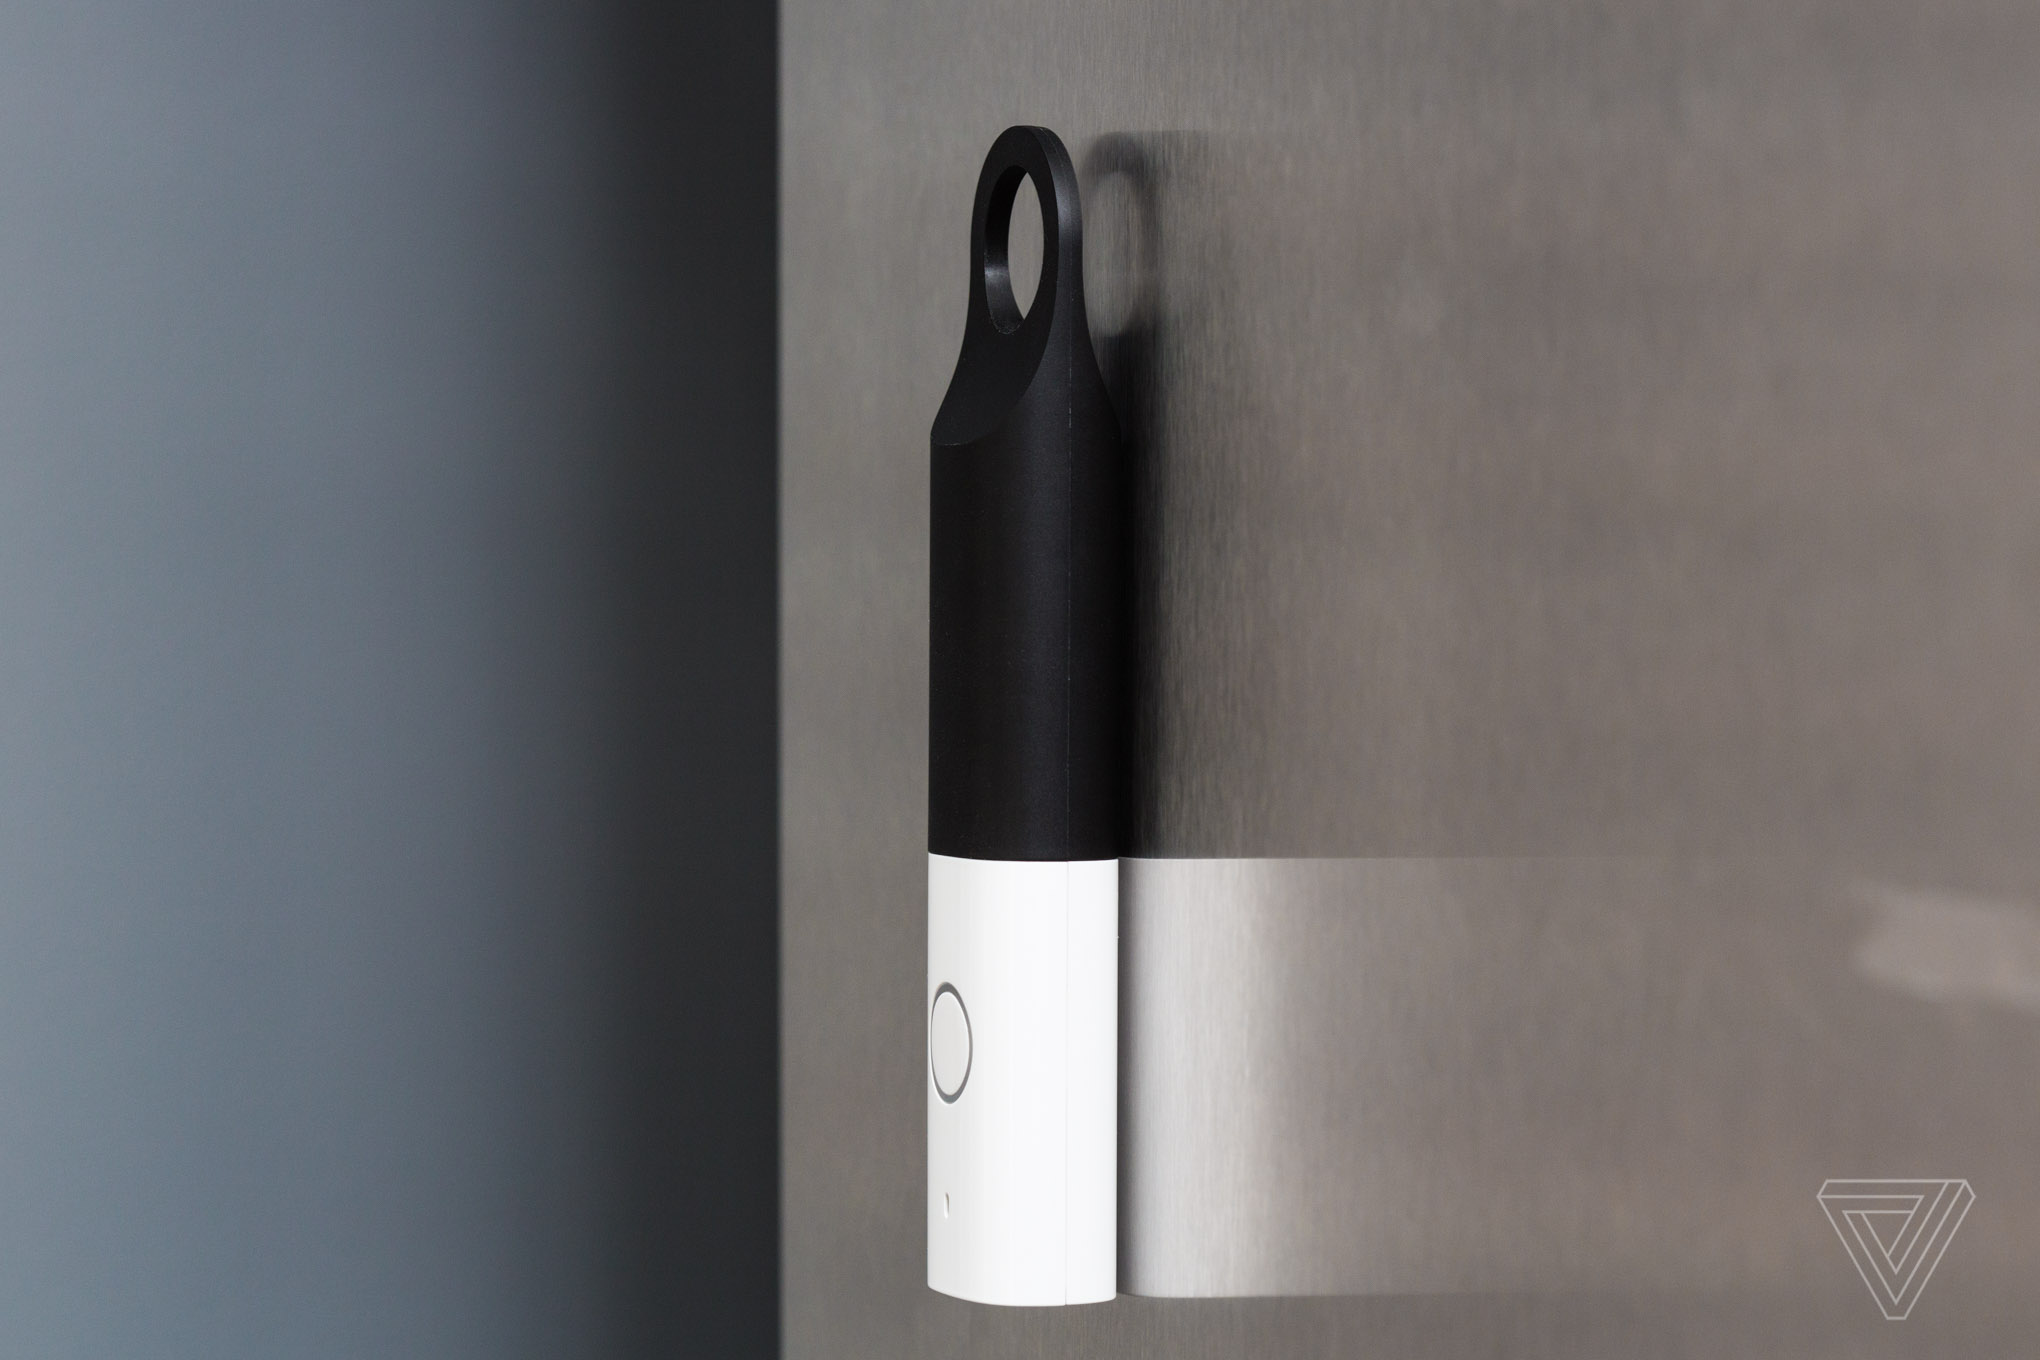 The Dash Wand on a fridge